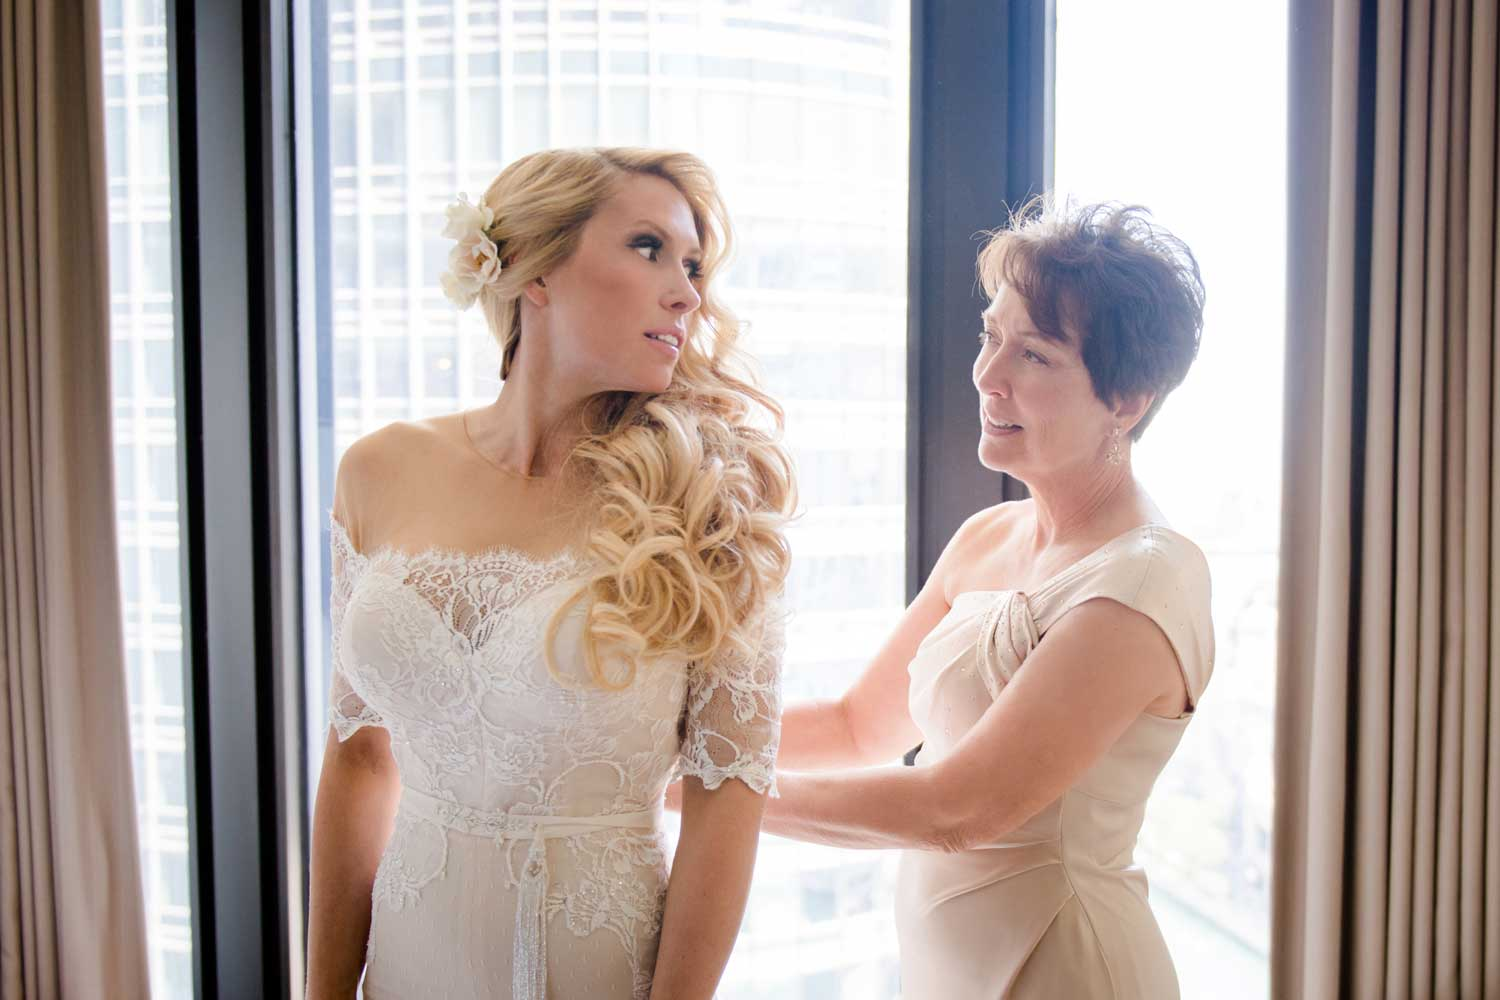 bride in illusion wedding dress getting ready with the help of her mother in a beautiful evening gown